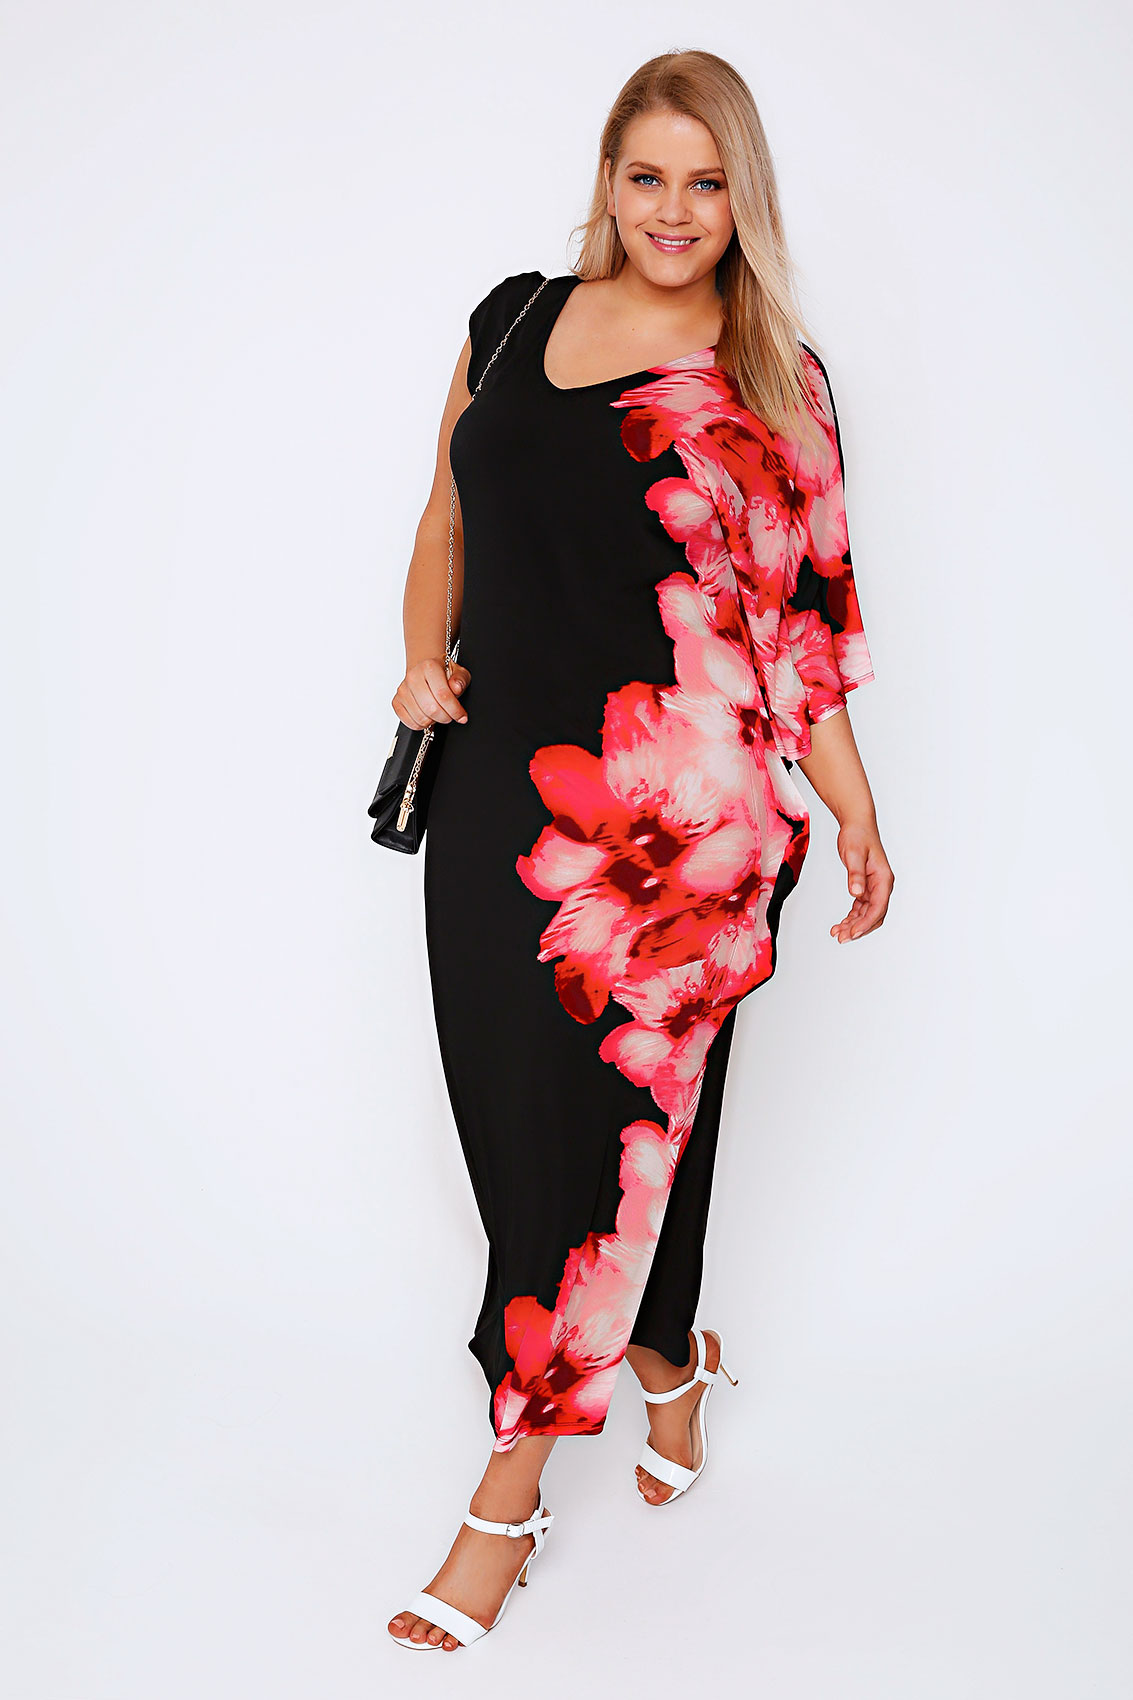 Women's Sleeveless Halter Neck Maxi Dress Vintage Floral Print Backless Beach Long Dresses S-5XL,Blue/Black. from $ 18 59 Prime. out of 5 stars Simplee Apparel. Women's Strap Ruffle Cold Shoulder Floral Print Wrap Maxi Dress Beach Womens Summer Contrast Sleeveless Tank Top Floral Print Maxi Dress. from $ 19 99 Prime. out of 5.